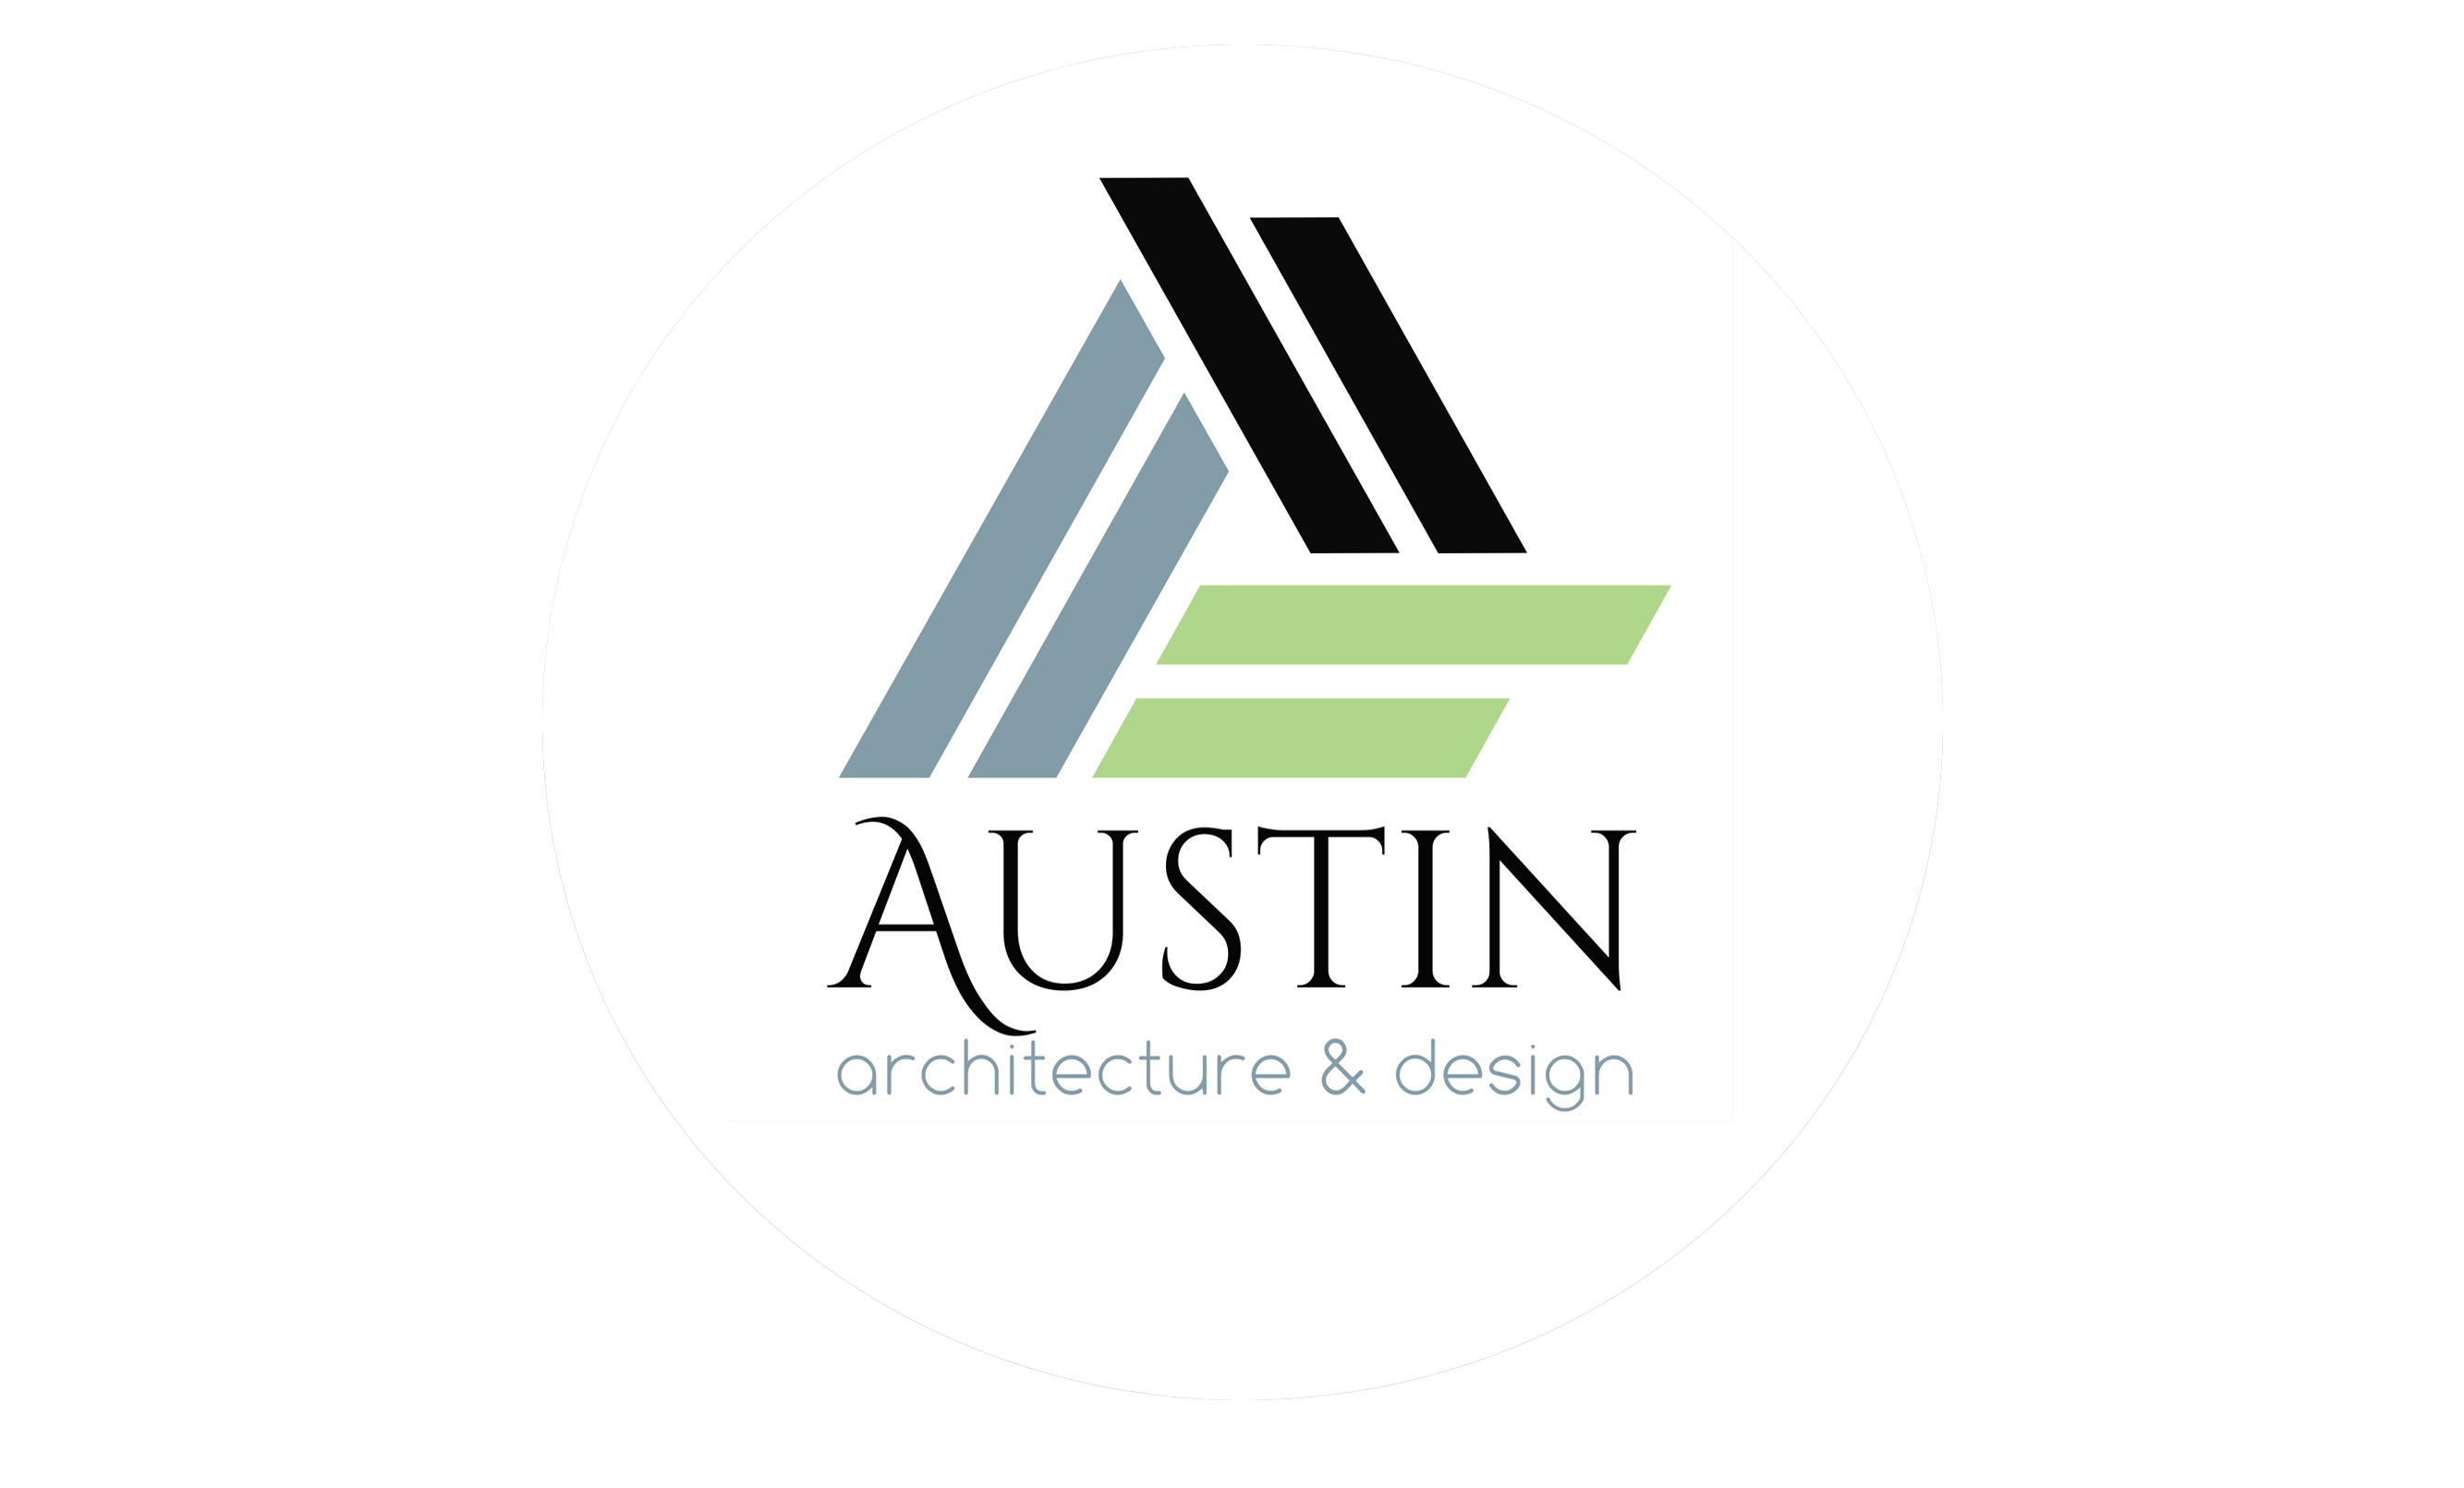 Austin Architecture & Design Ltd